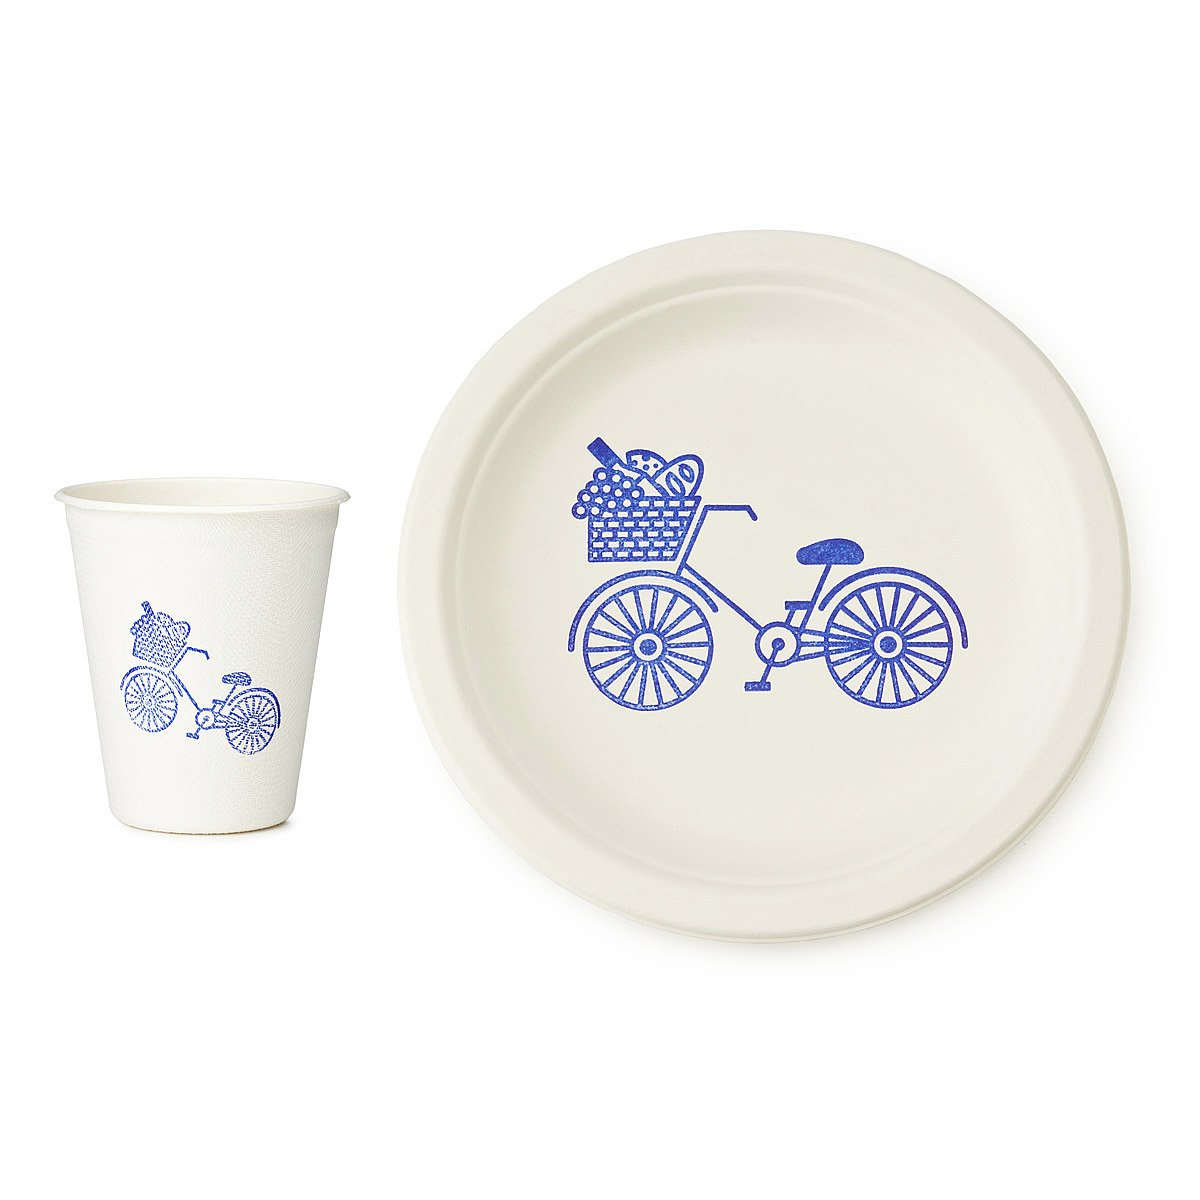 Sustainable Picnic Plates and Cups Set 1 thumbnail  sc 1 st  UncommonGoods & Sustainable Picnic Plates and Cups Set | plate design bike plate ...